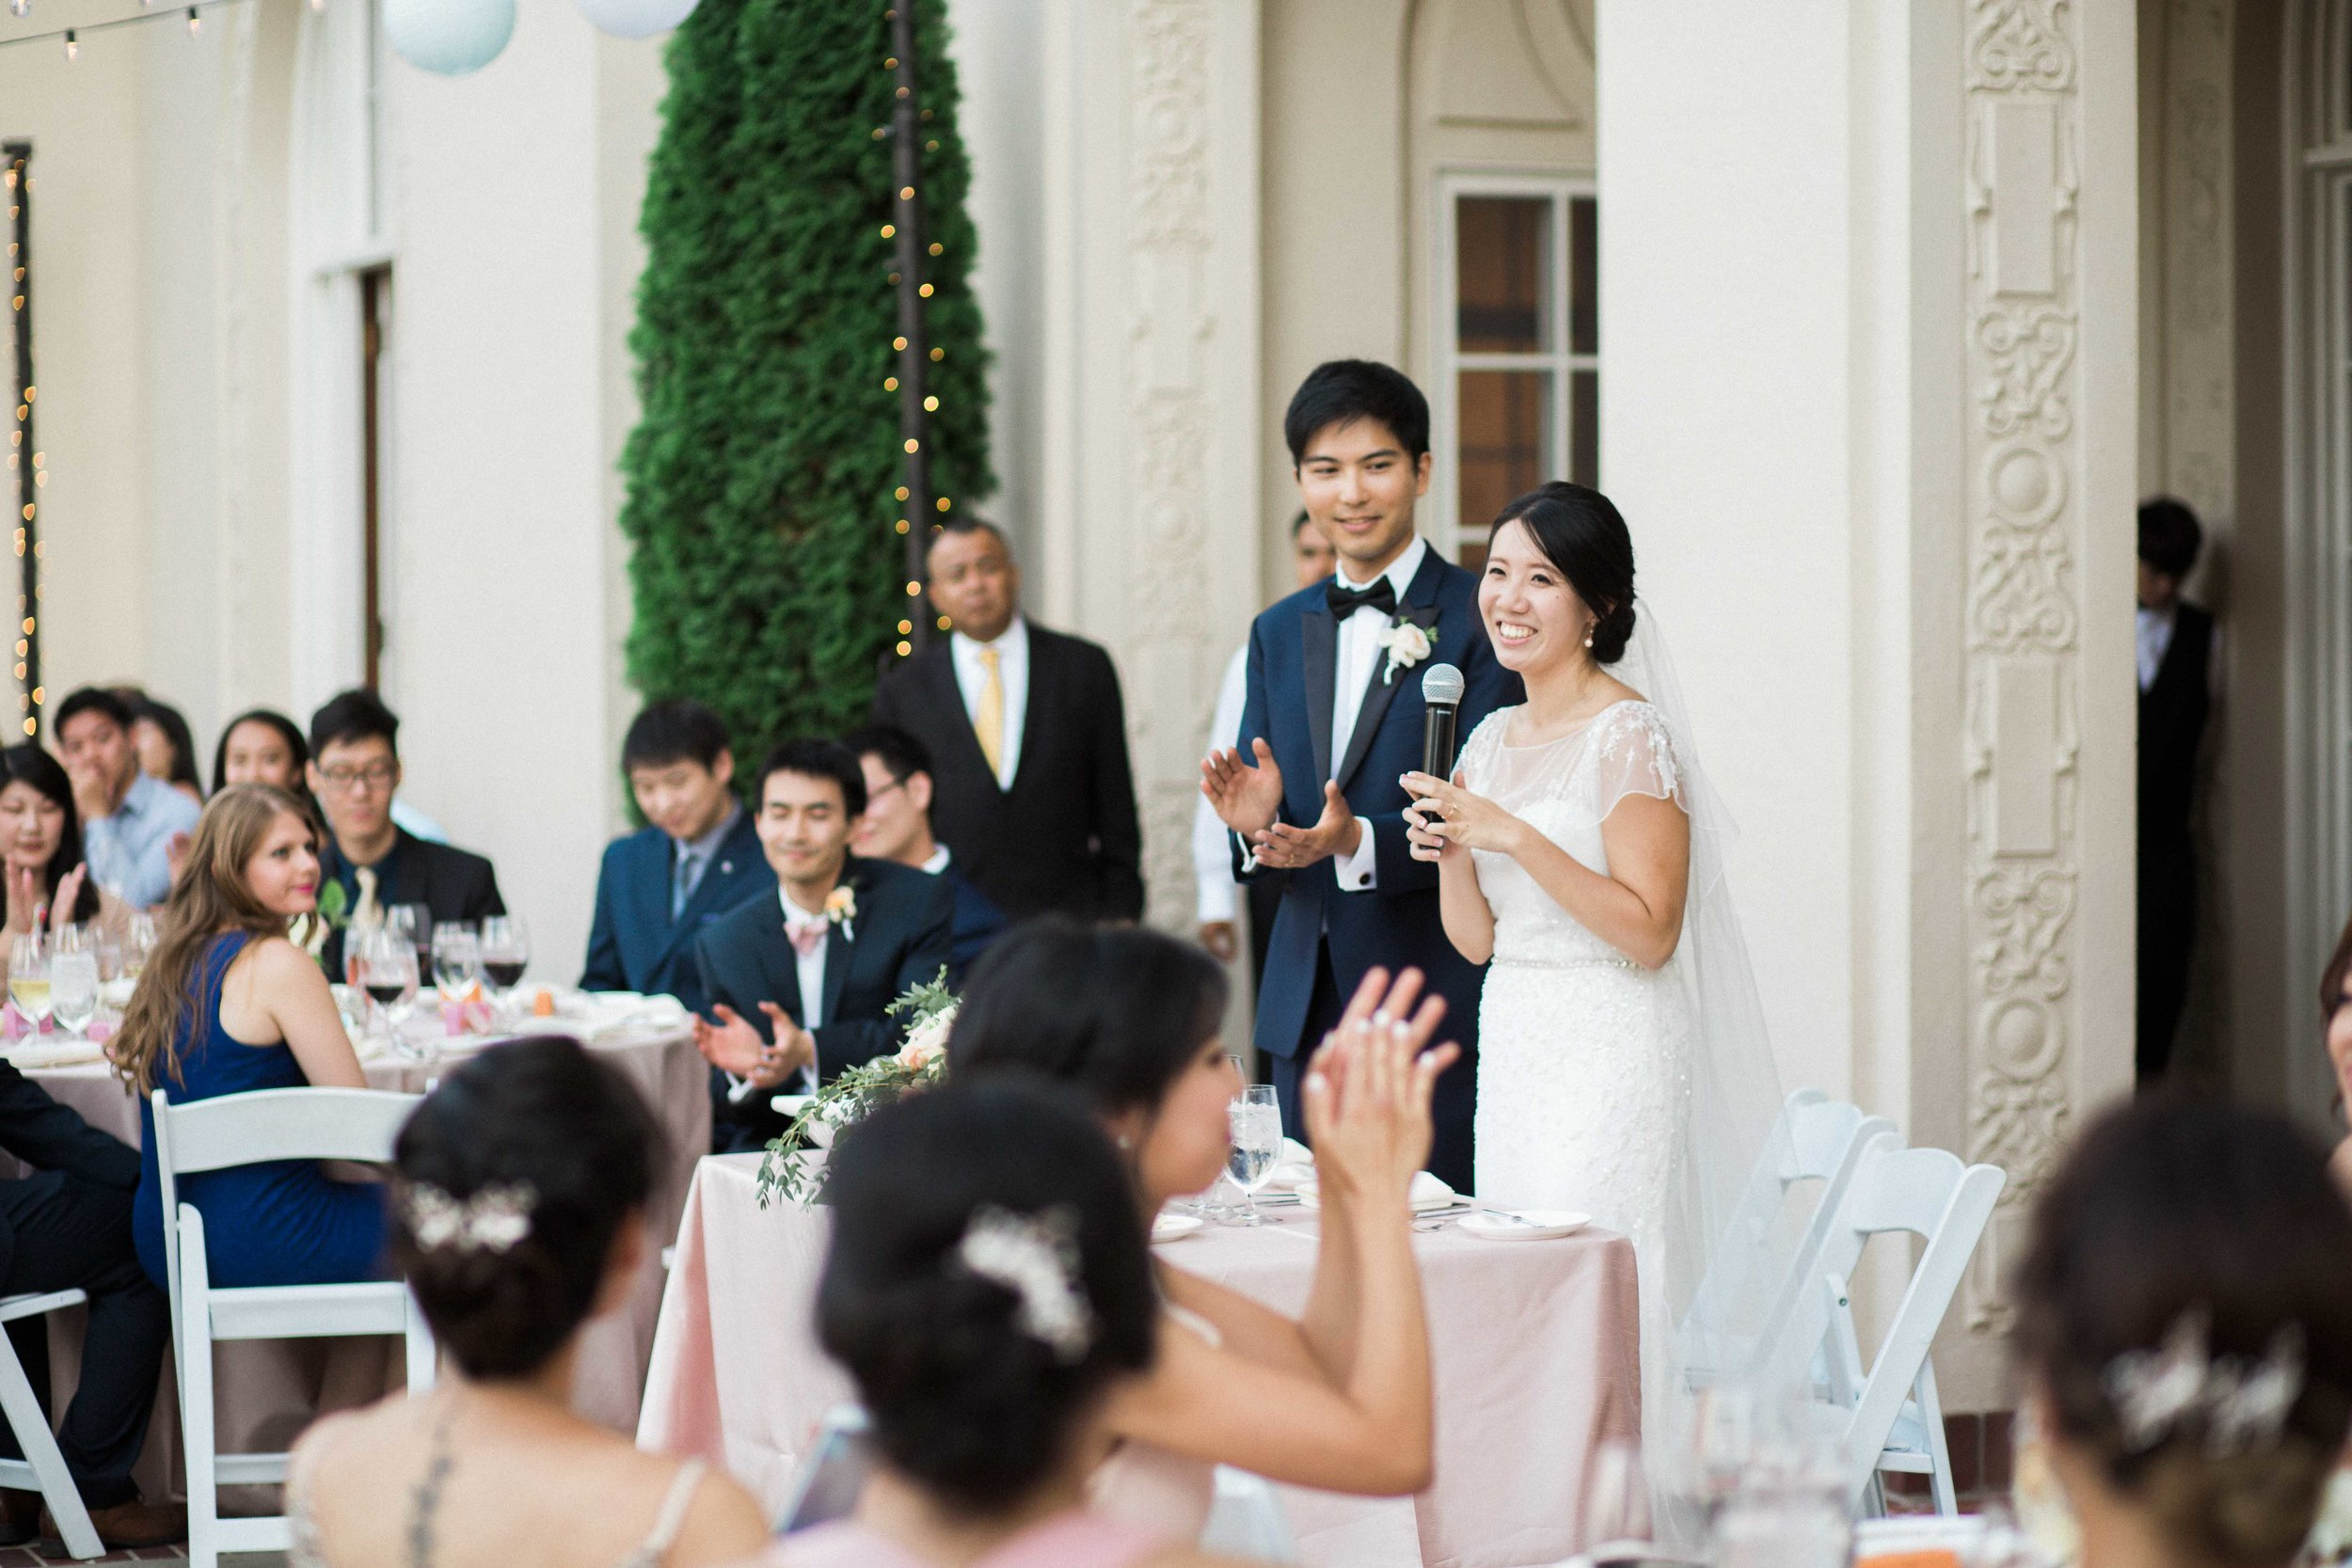 Villa_Montalvo_Wedding_Photographer_Videographer_San_Francisco173.jpg